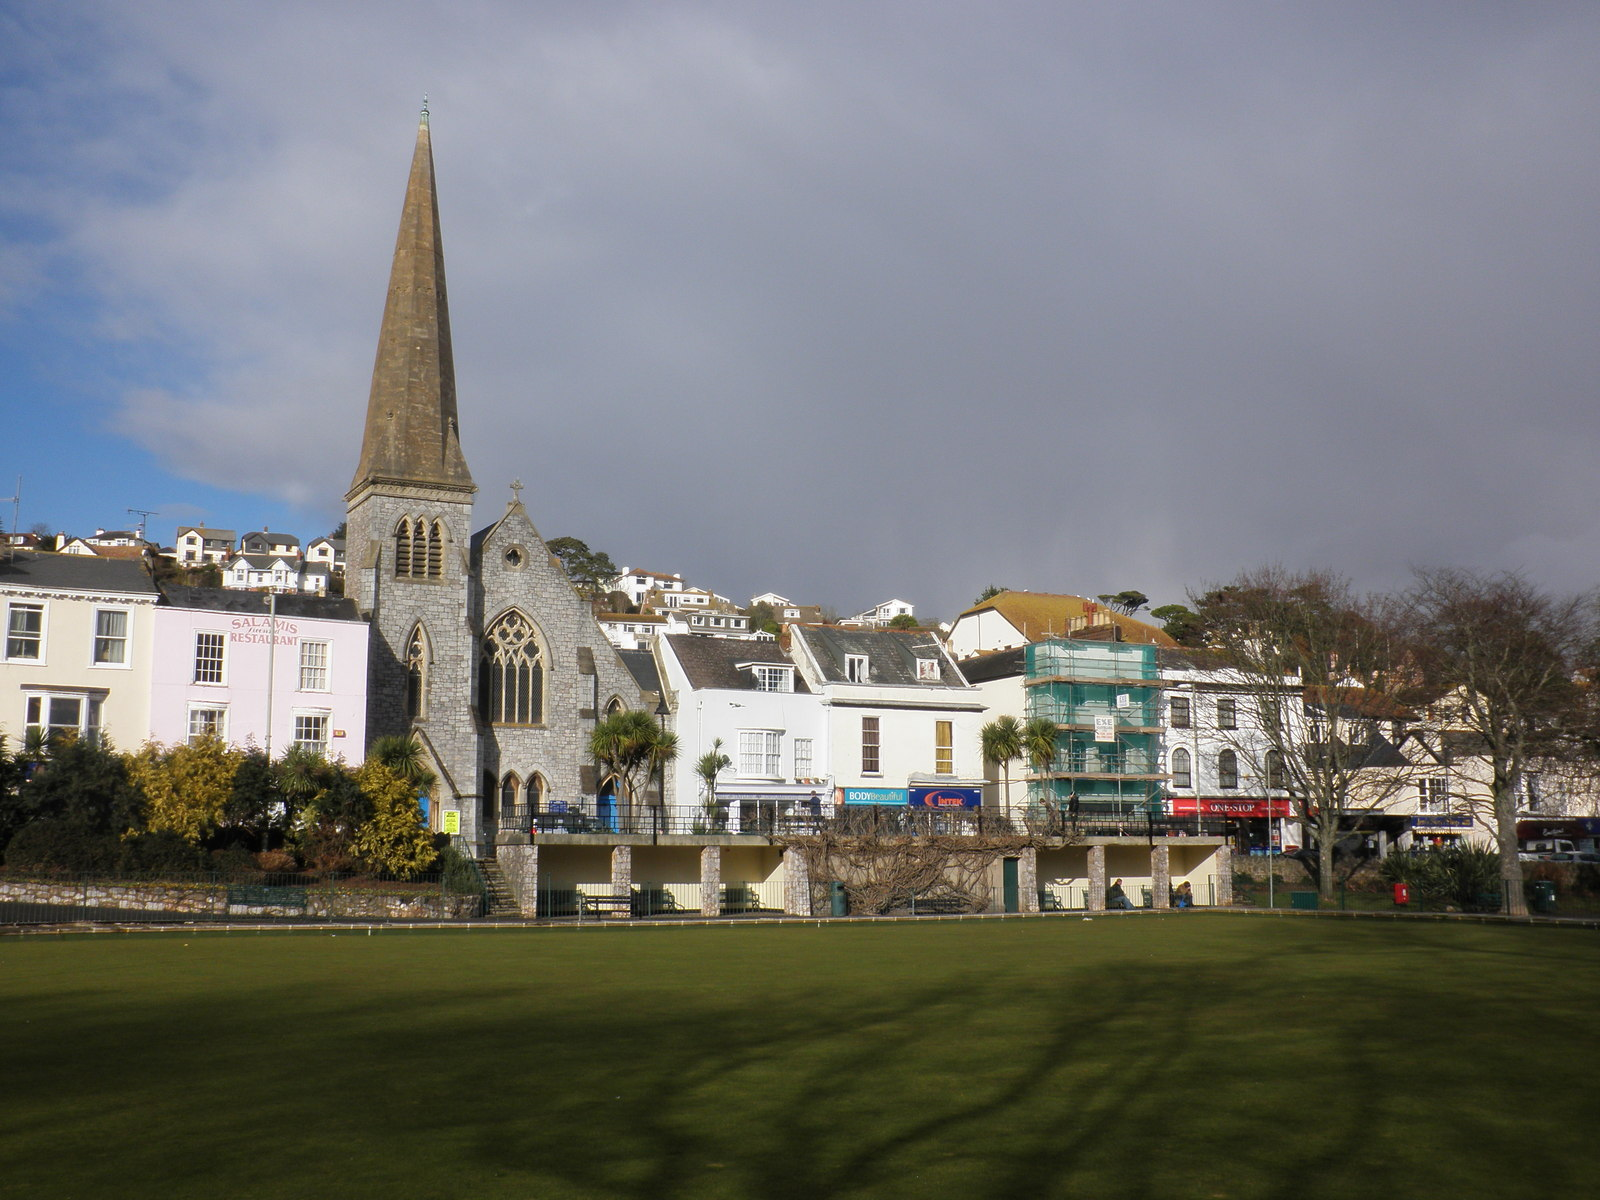 File:View across the bowling green, Dawlish - geograph org